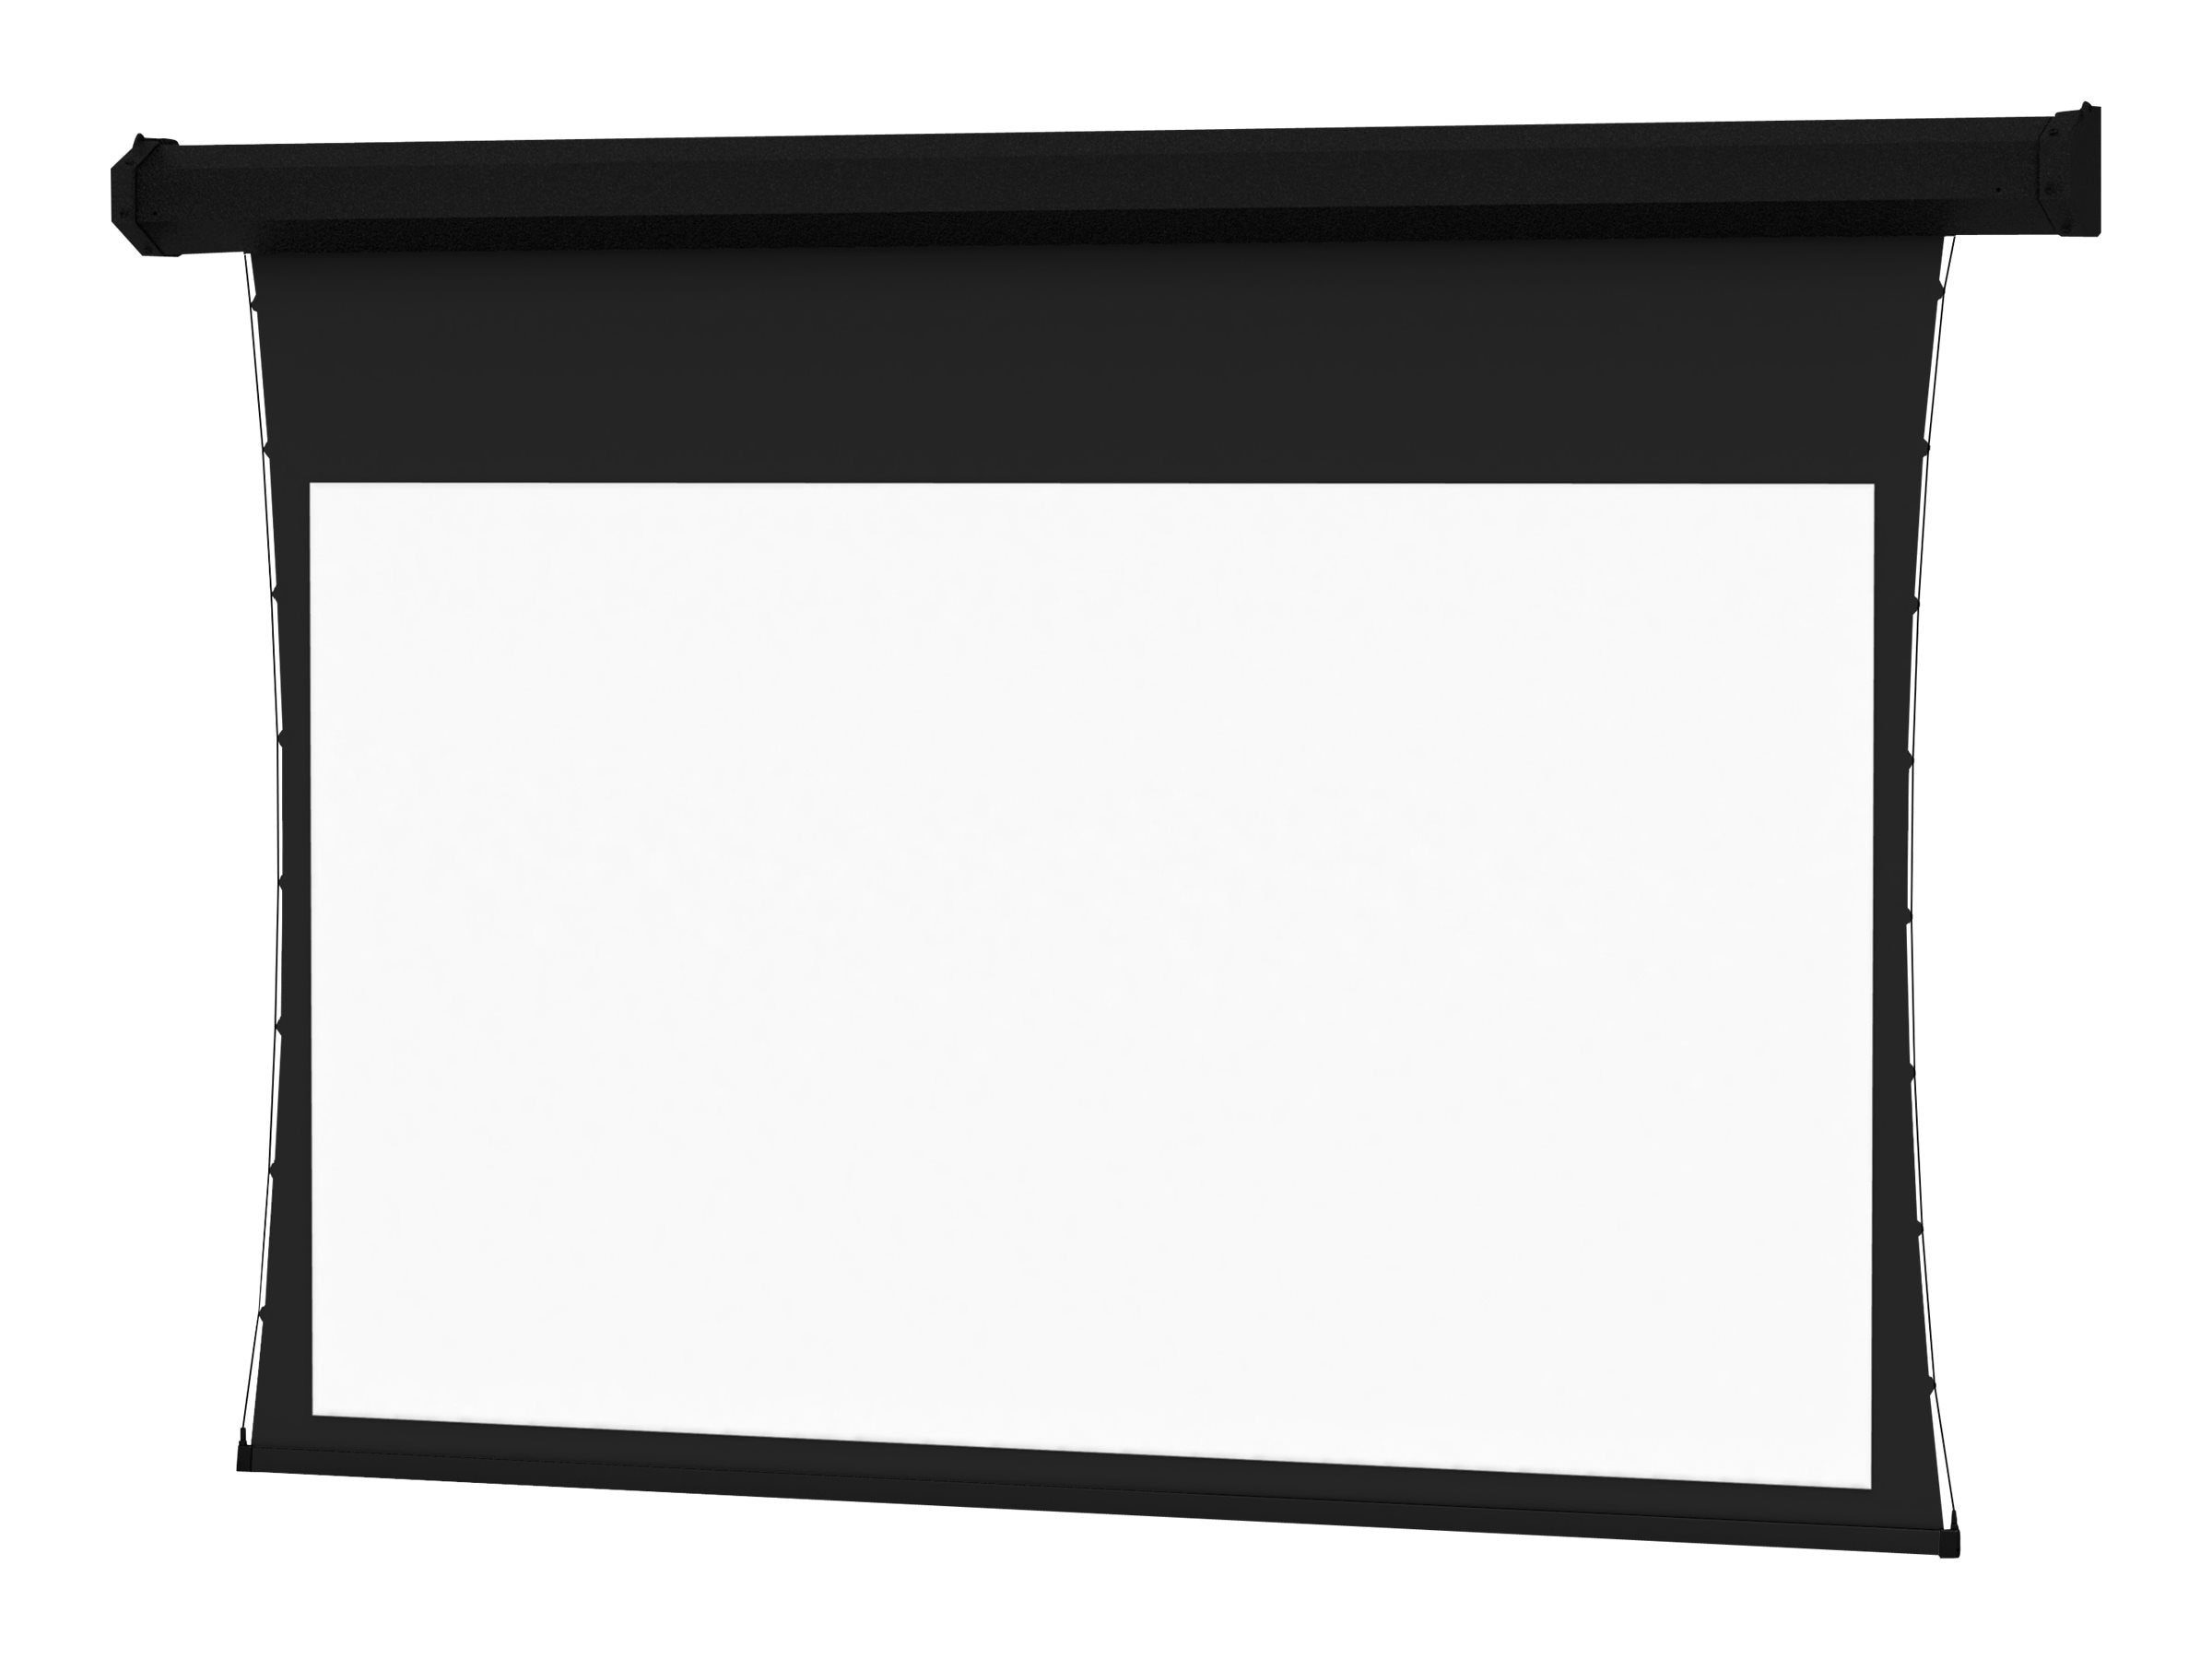 Da-Lite Tensioned Cosmopolitan Electrol Projection Screen, Da-Mat, 65 x 116, 79026LS